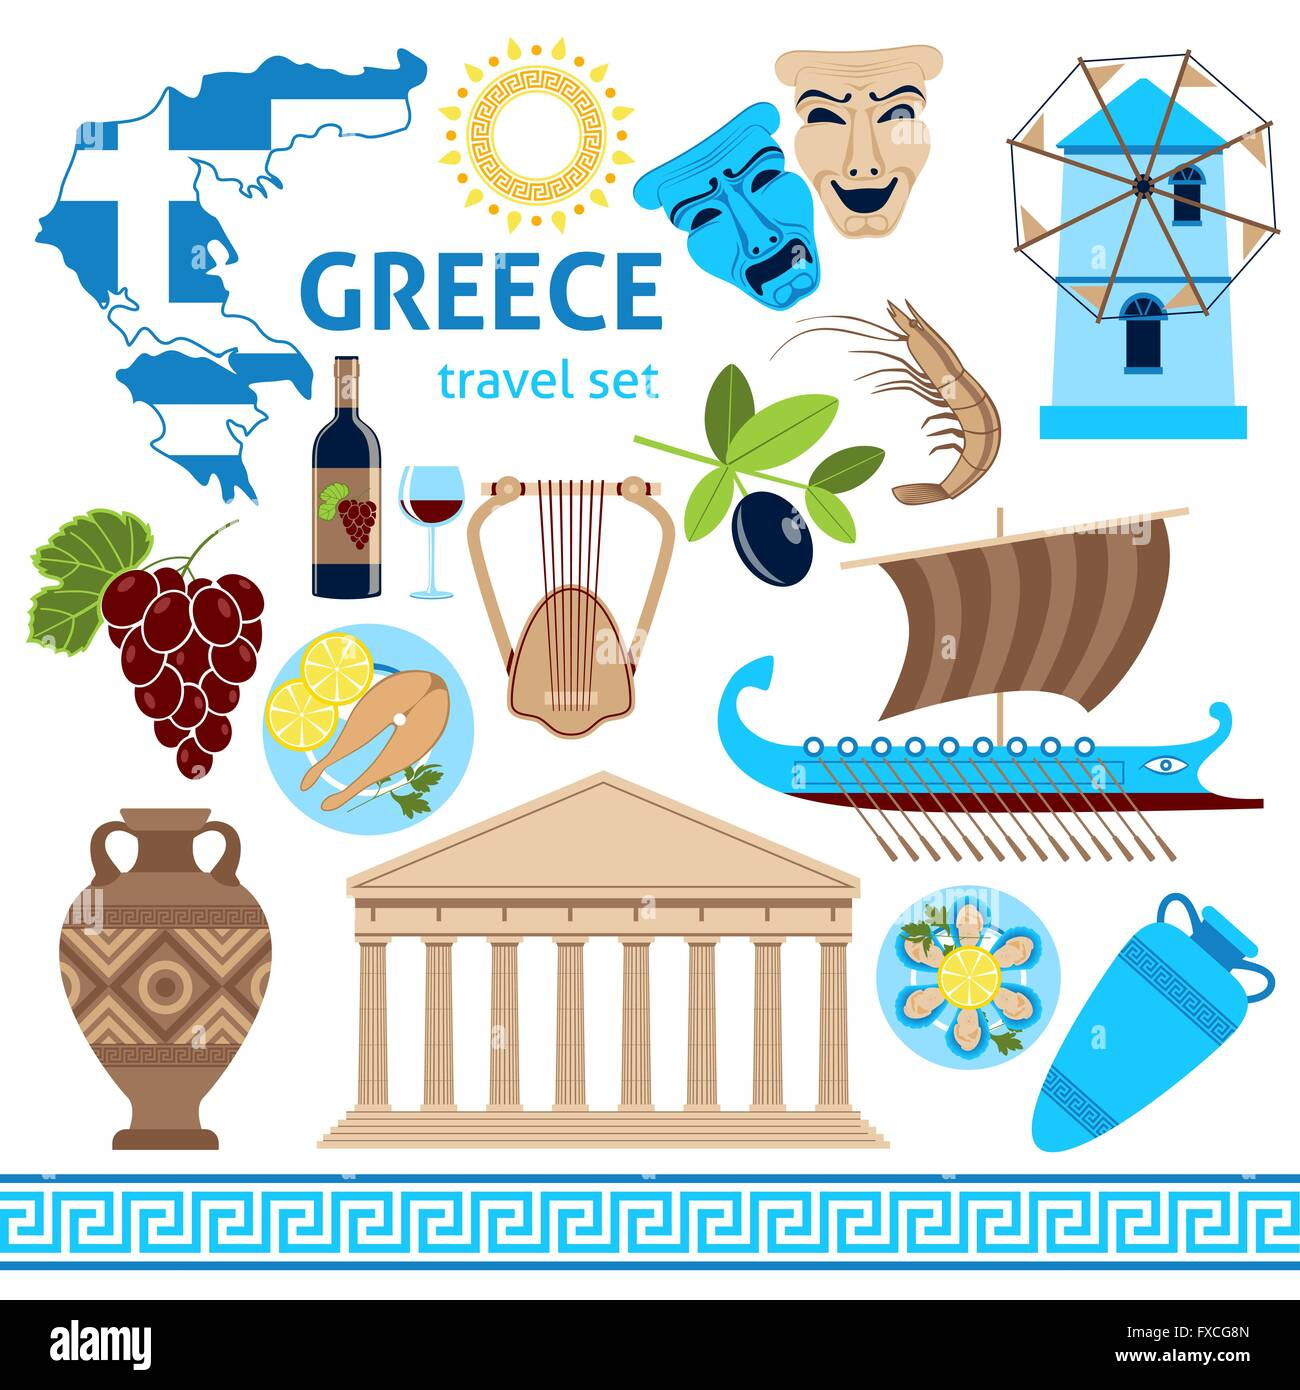 Ancient greece map stock vector images alamy greece symbols touristic set flat composition stock vector biocorpaavc Image collections